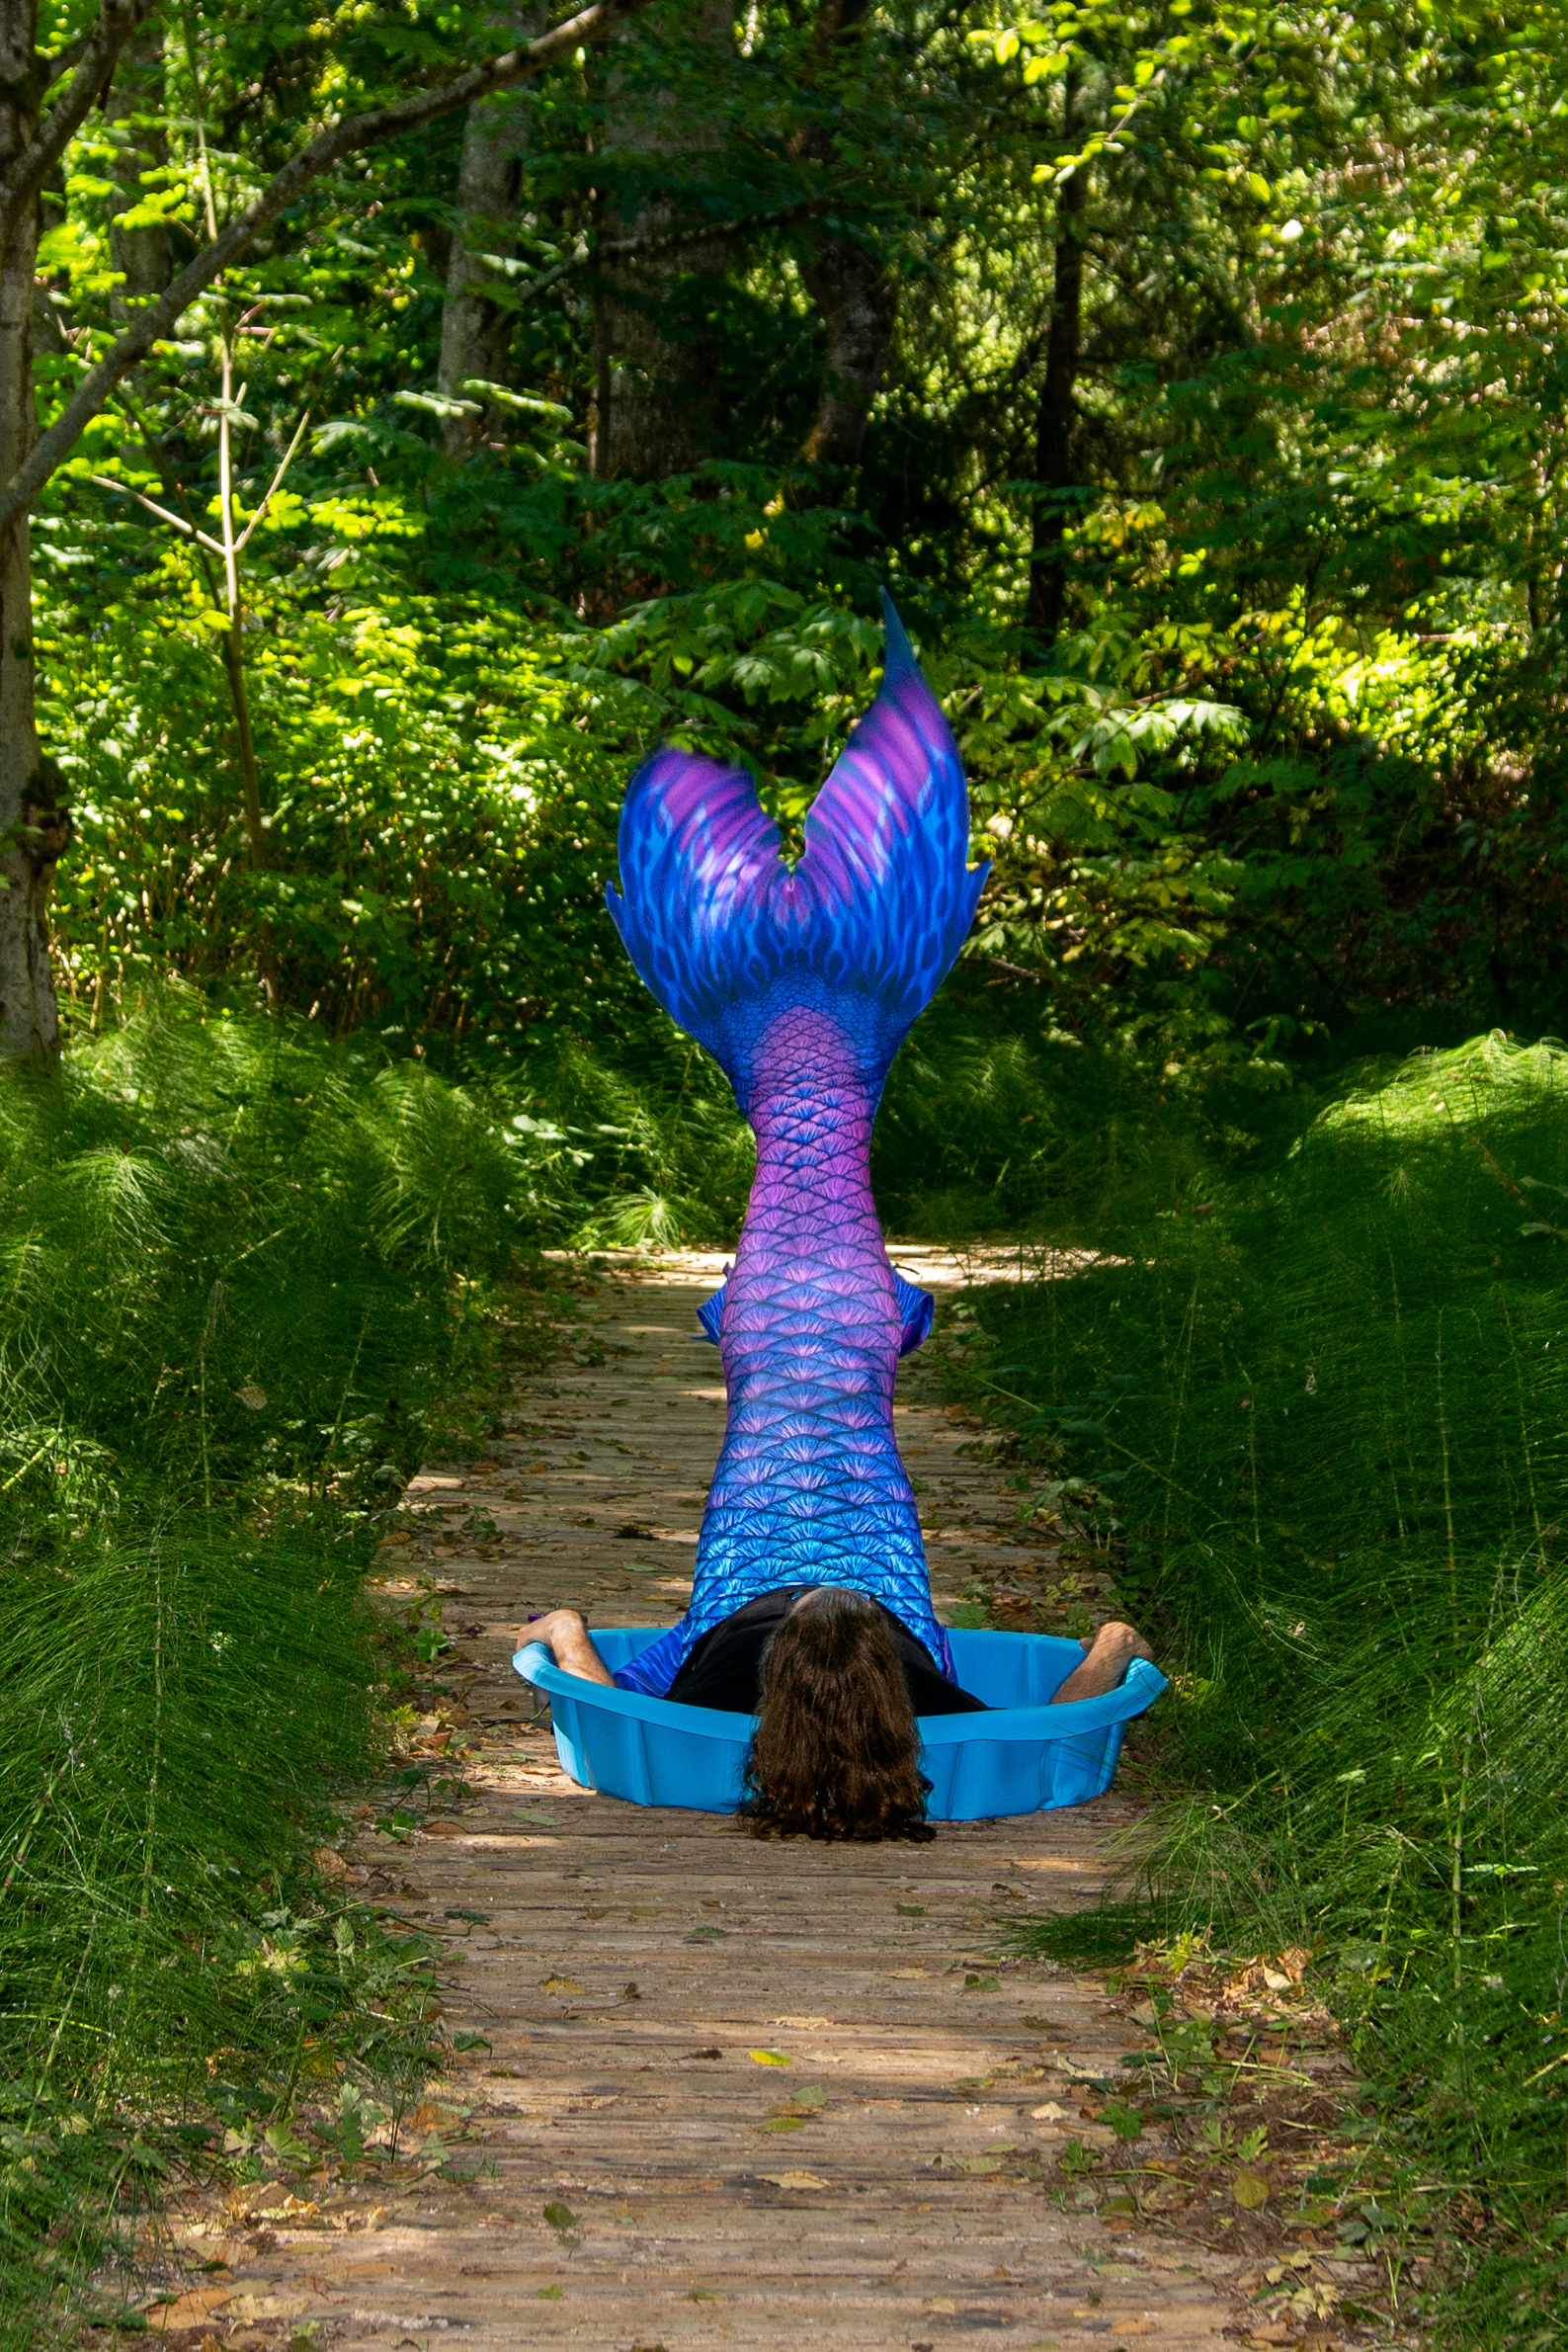 Mermaid Me Summer 2020 Photo #1250